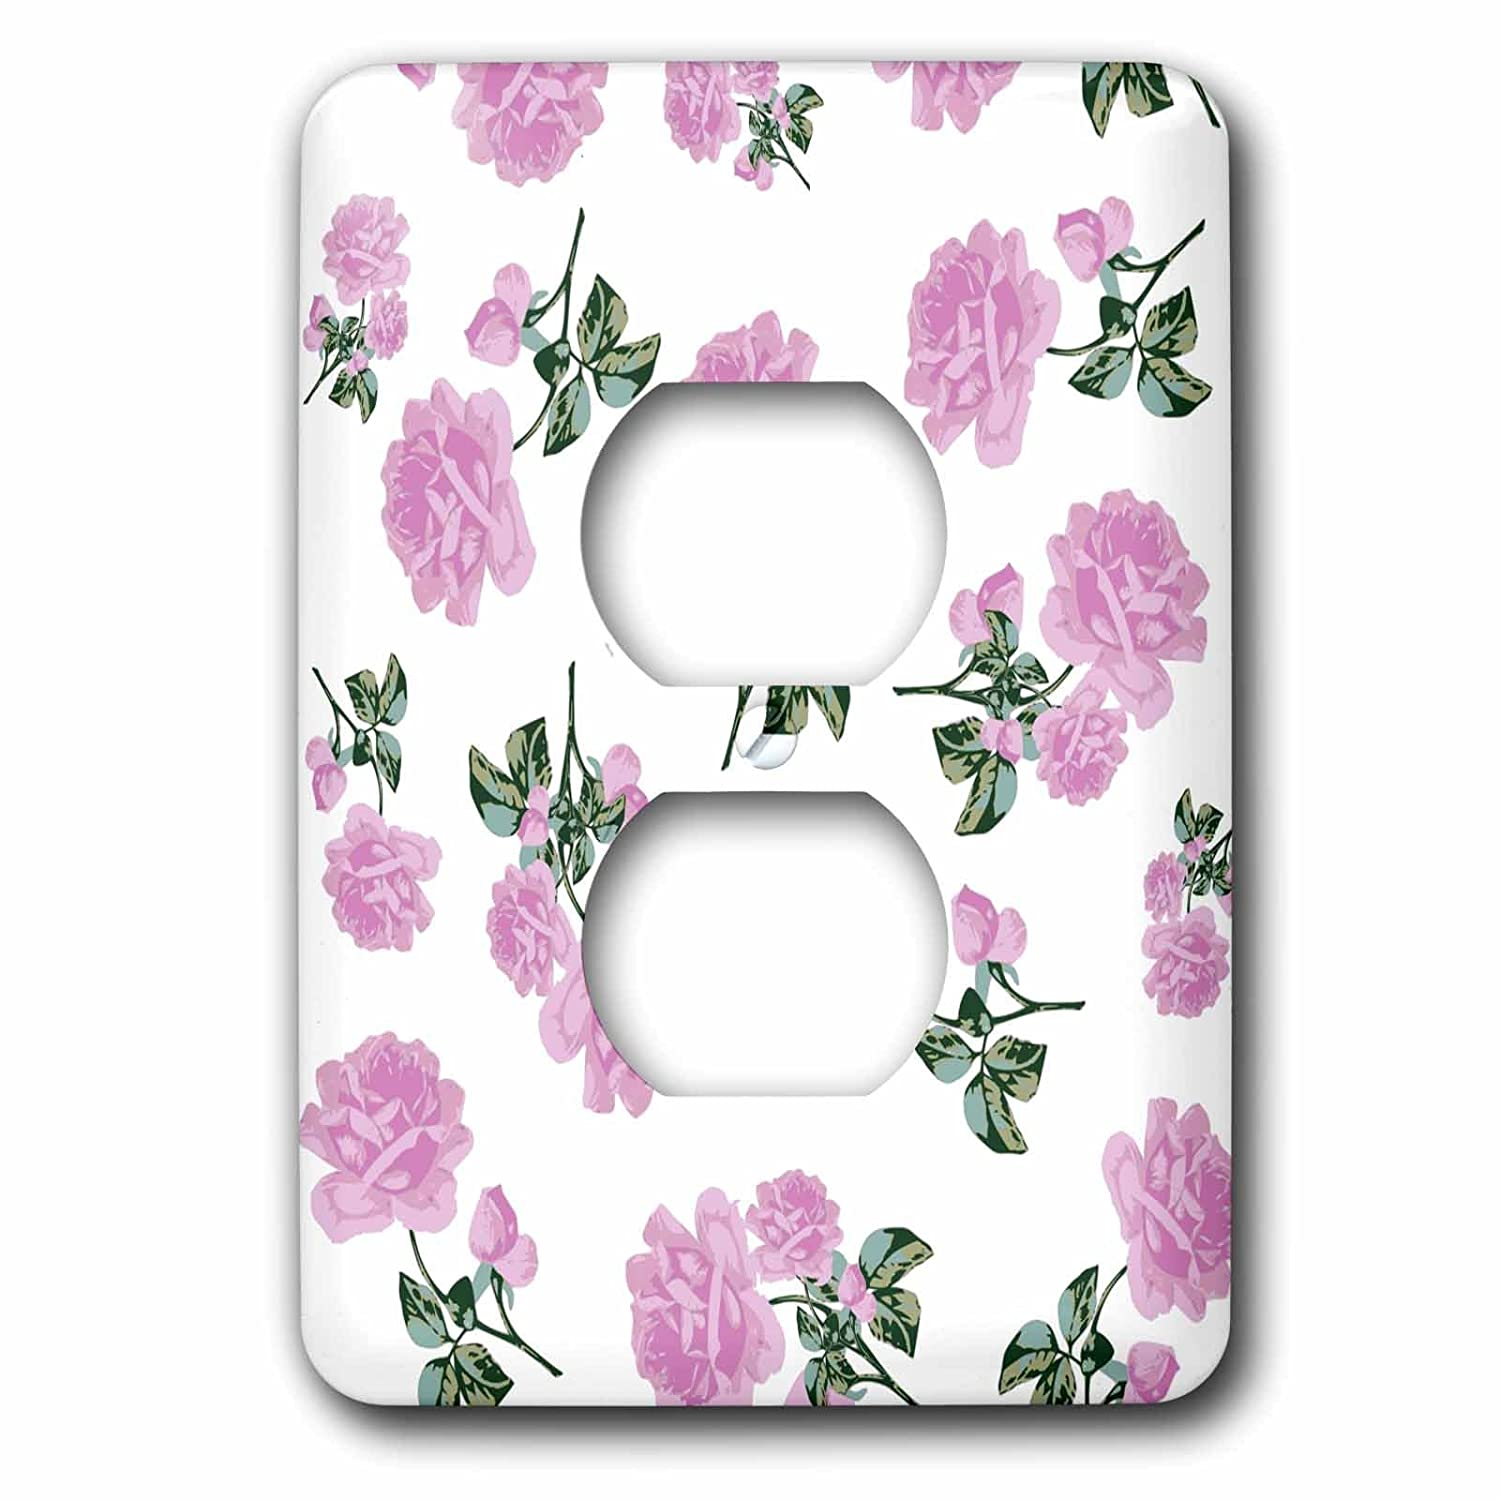 3dRose lsp/_56631/_6 Shabby Chic Light Pink Roses Vintage Floral Pattern on White Outlet Cover